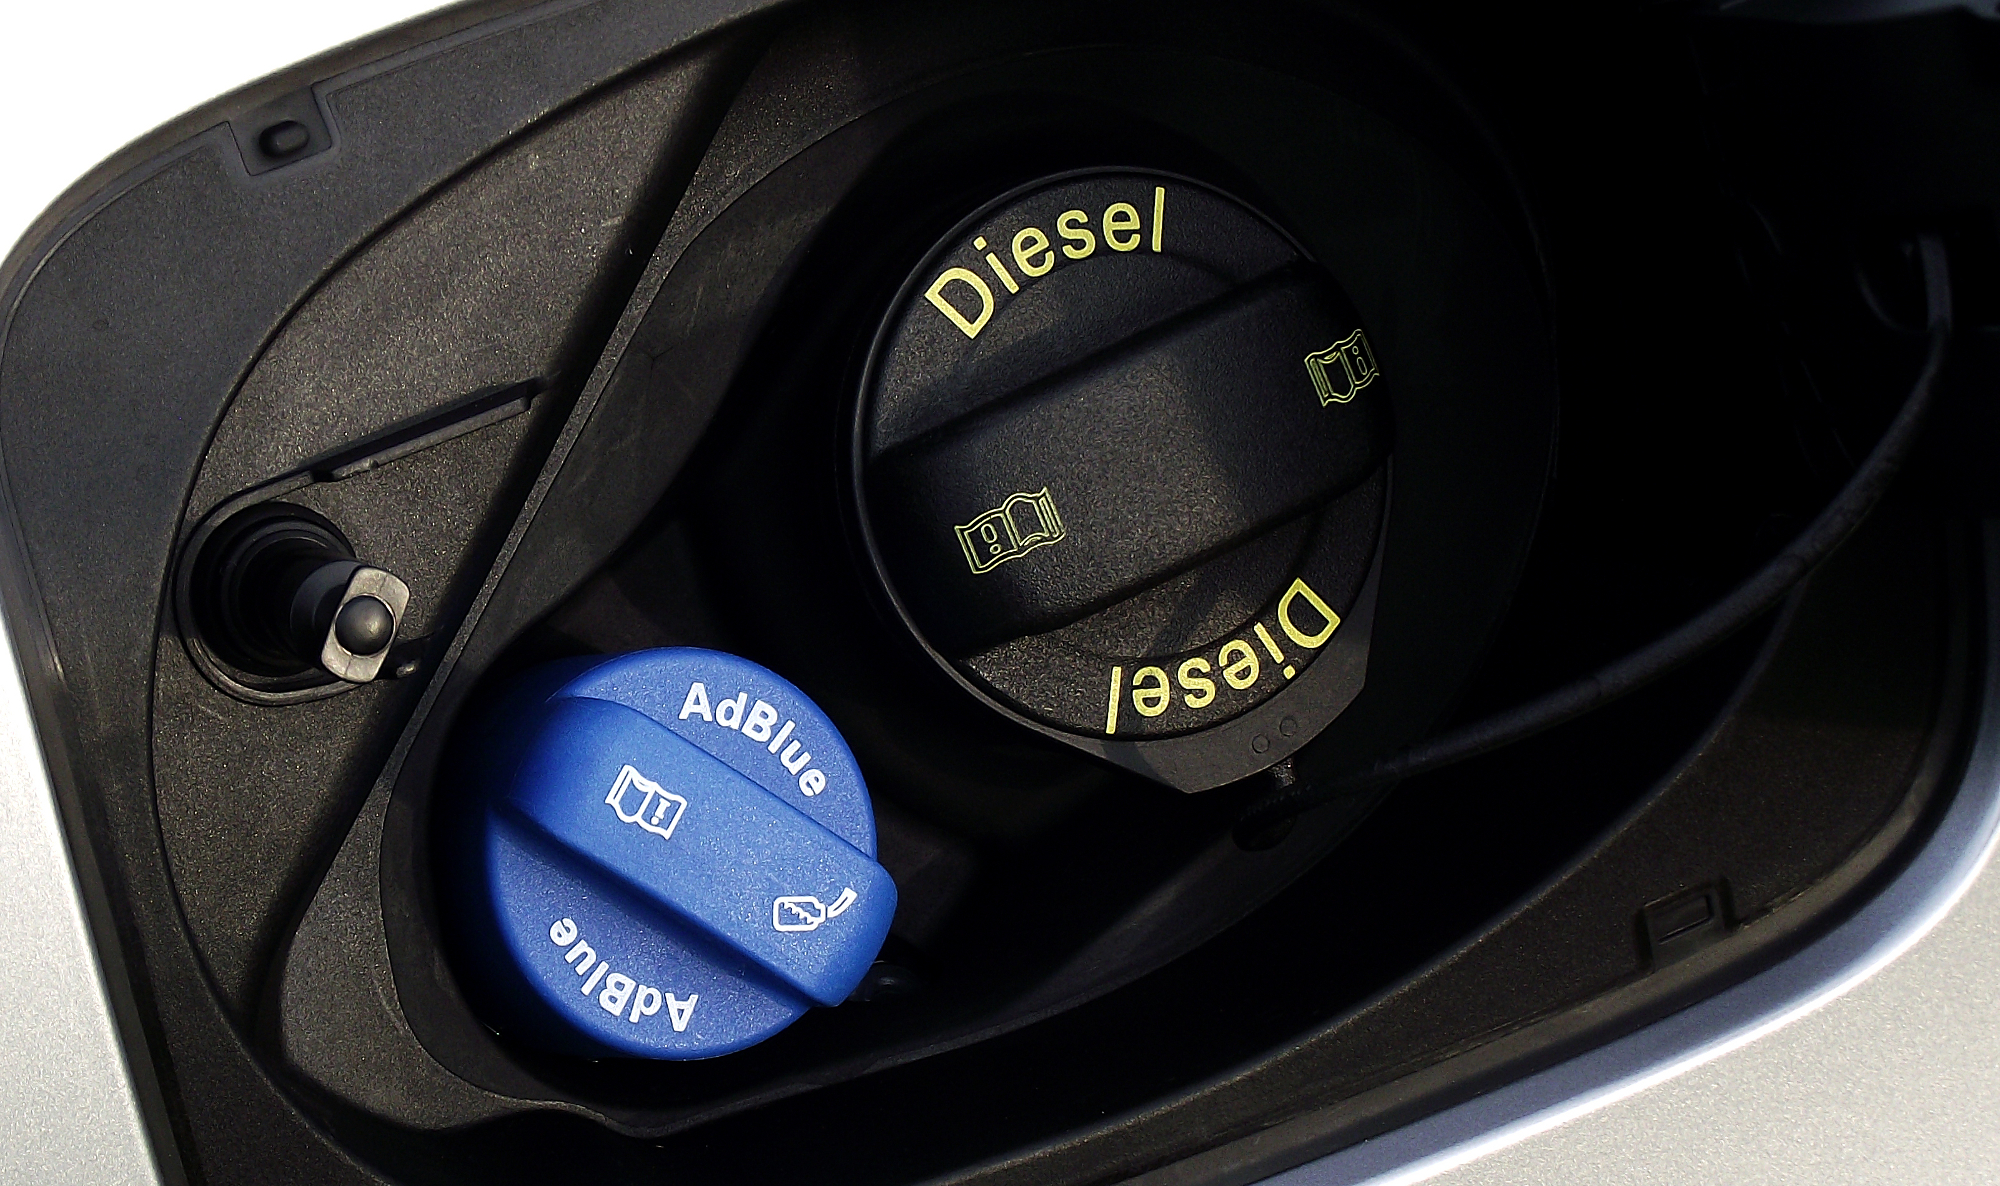 Diesel Exhaust Fluid >> Your Guide to AdBlue - What Is It, Who Needs It, and How to Refill It - autoevolution